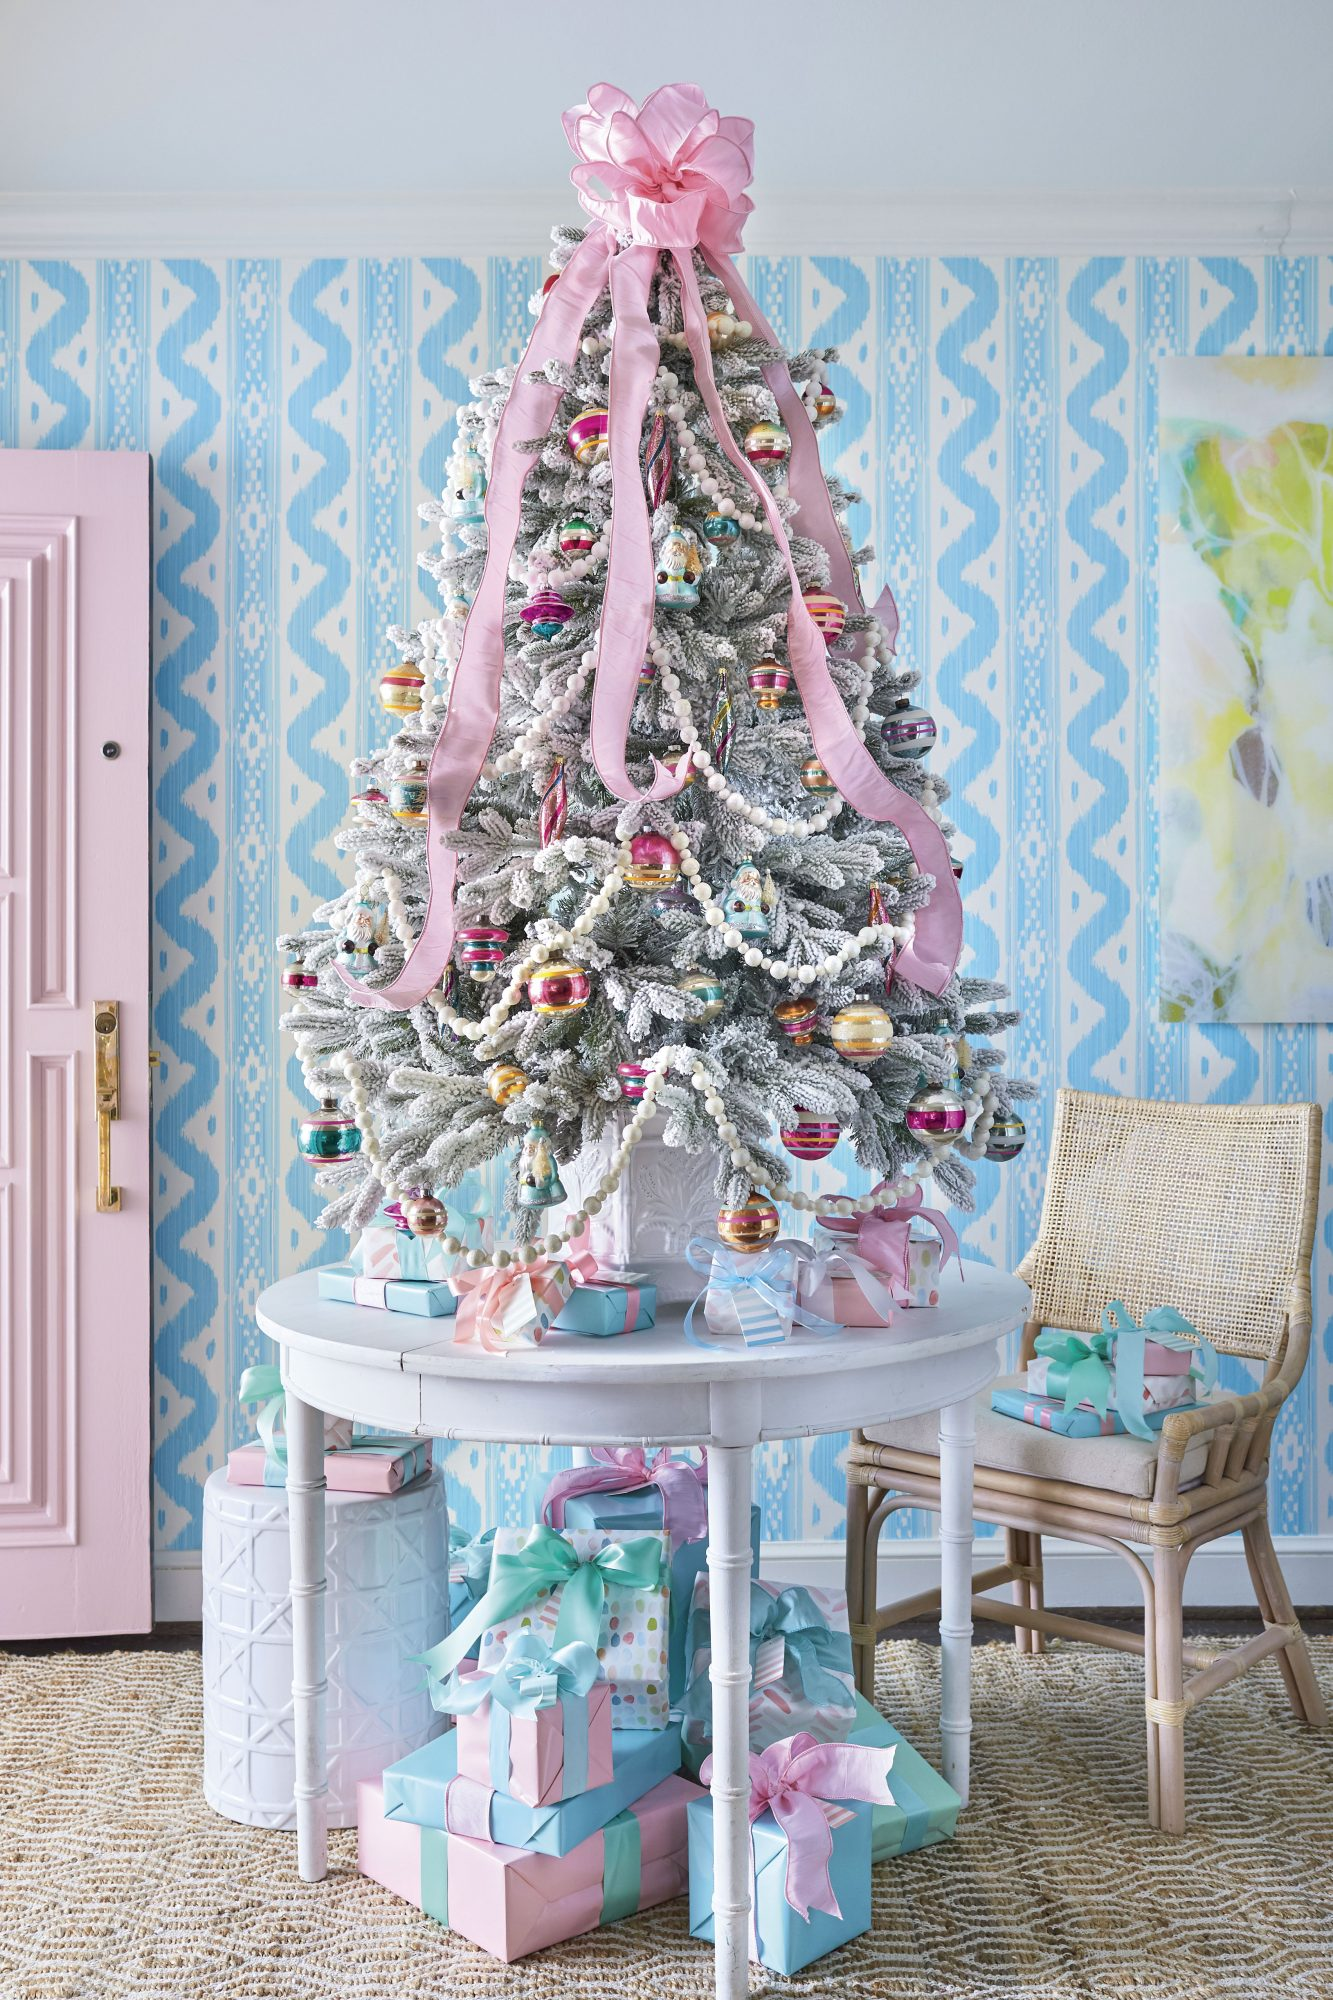 Pink and Teal Table Top Christmas Tree